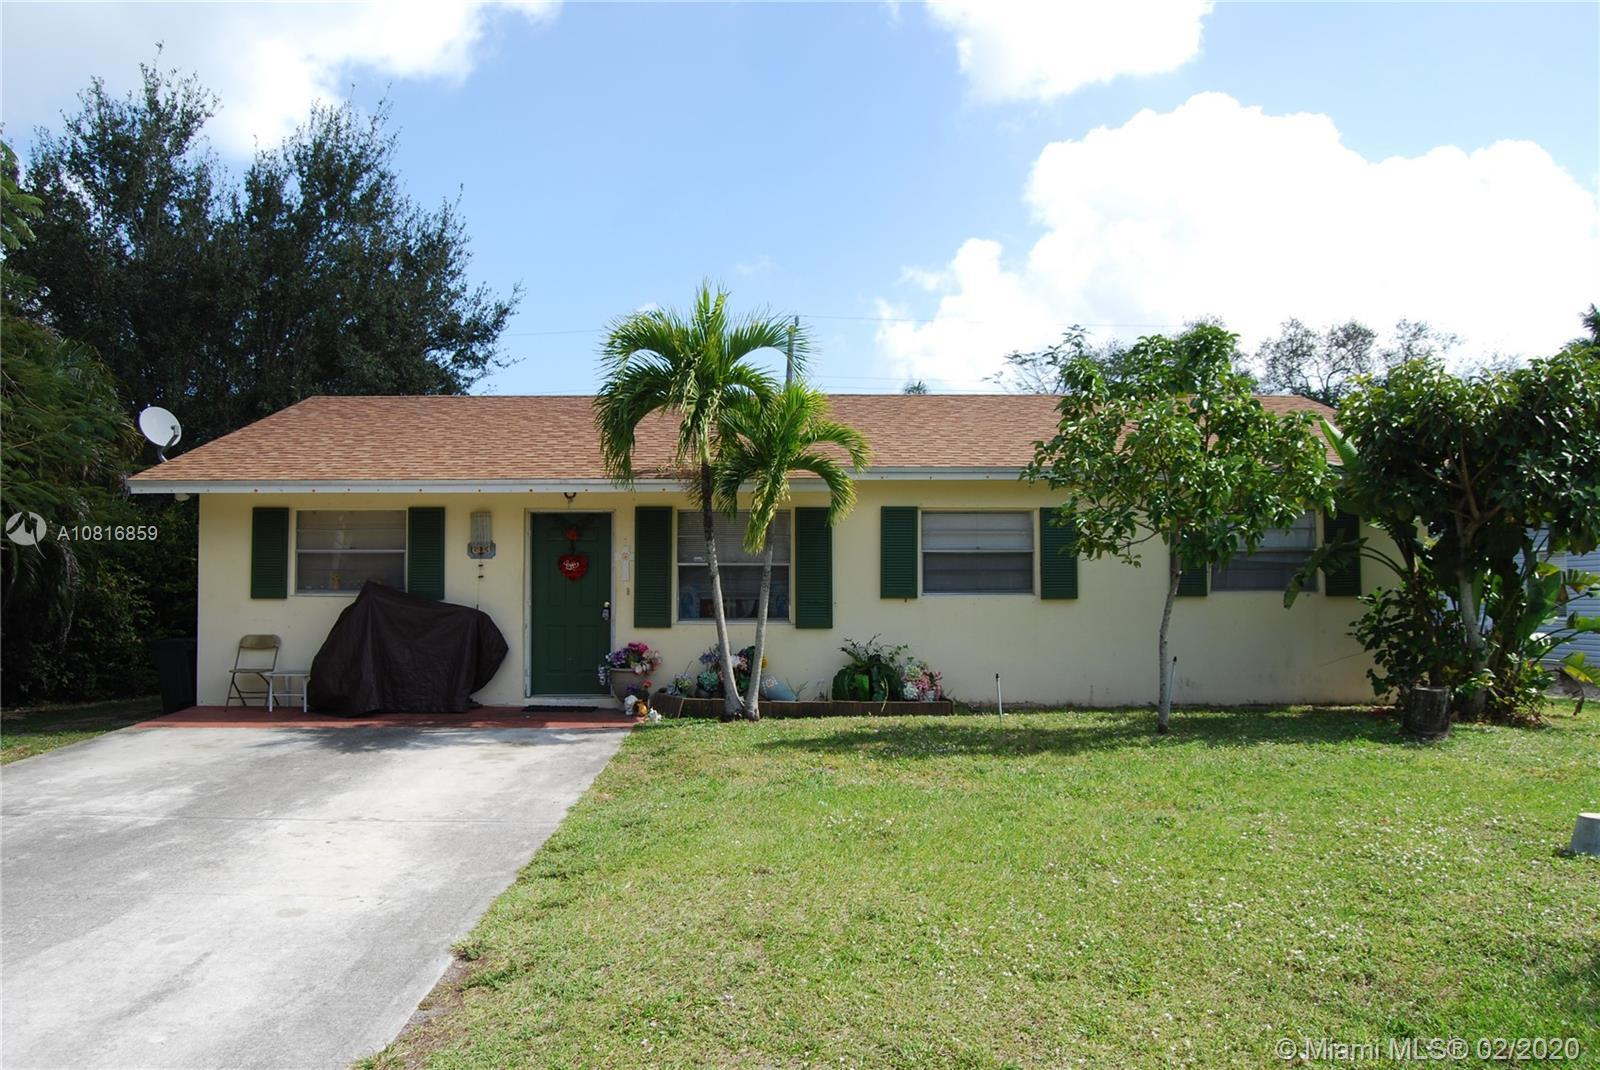 **Investor Special** 4 Bedroom 2 Bathroom House in the Heart of Jupiter!! Long Term Tenants. Tremend